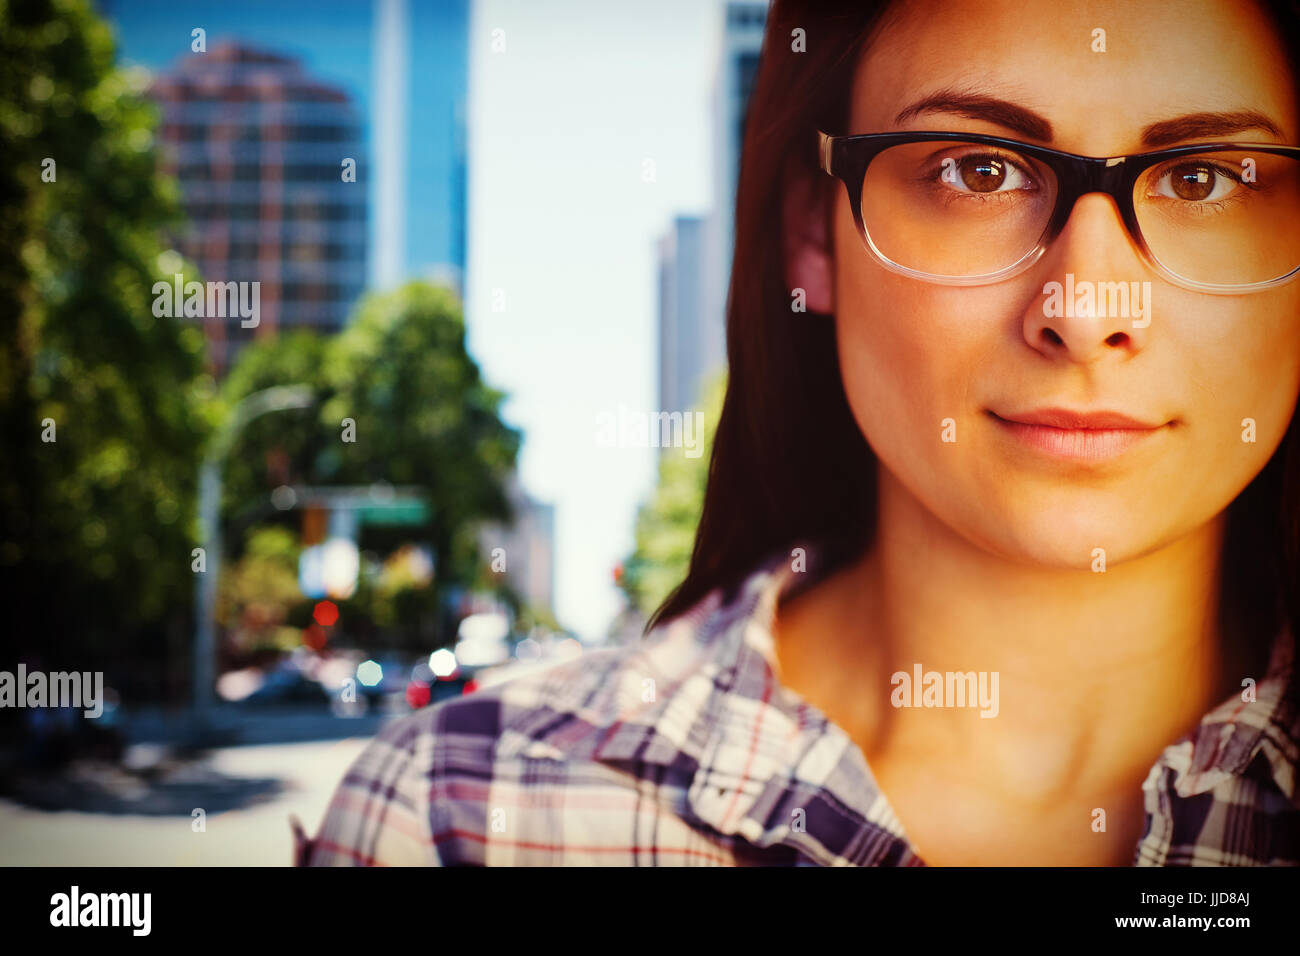 Close up portrait of young woman wearing eyeglasses  against blur view of a modern city Stock Photo